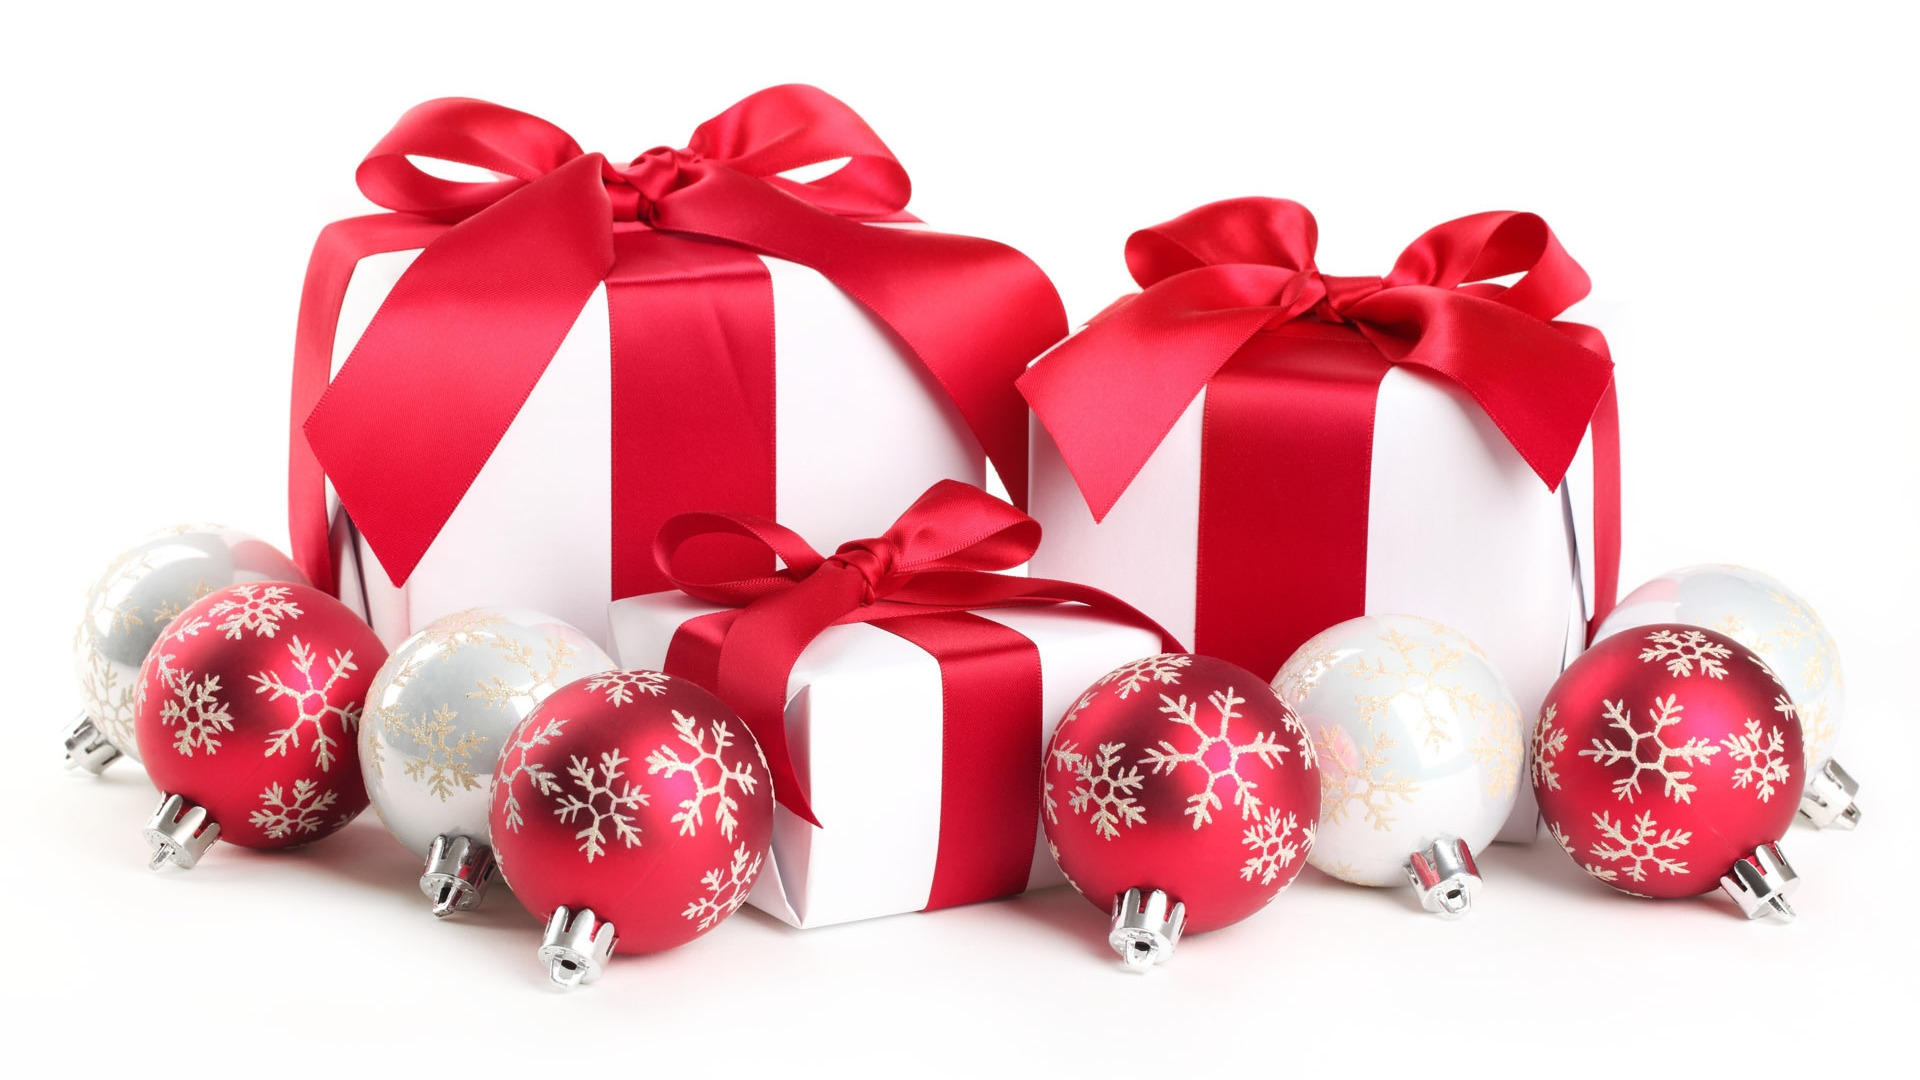 Christmas Gifts HD Wallpaper - Wallpaper, High Definition ...